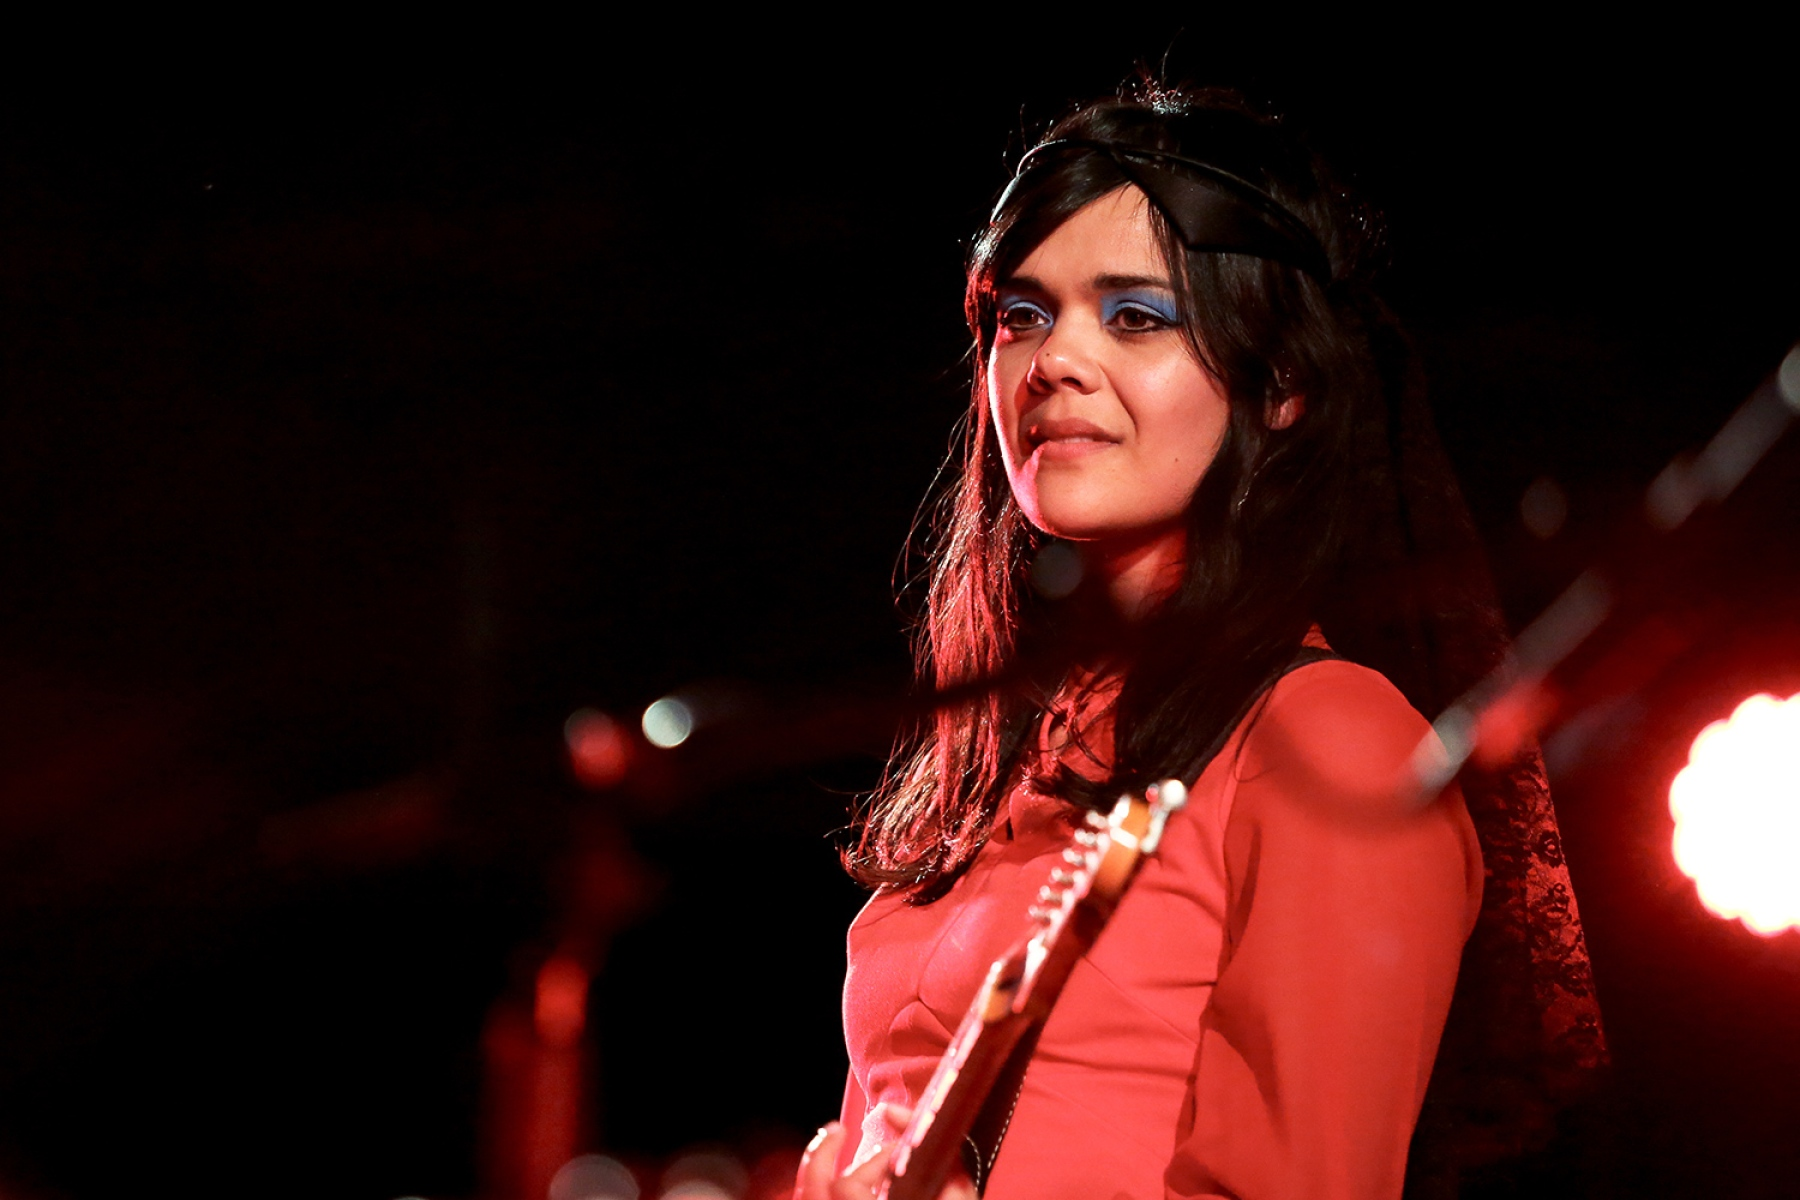 Bat for Lashes Phone Number, Email ID, Address, Fanmail, Tiktok and More